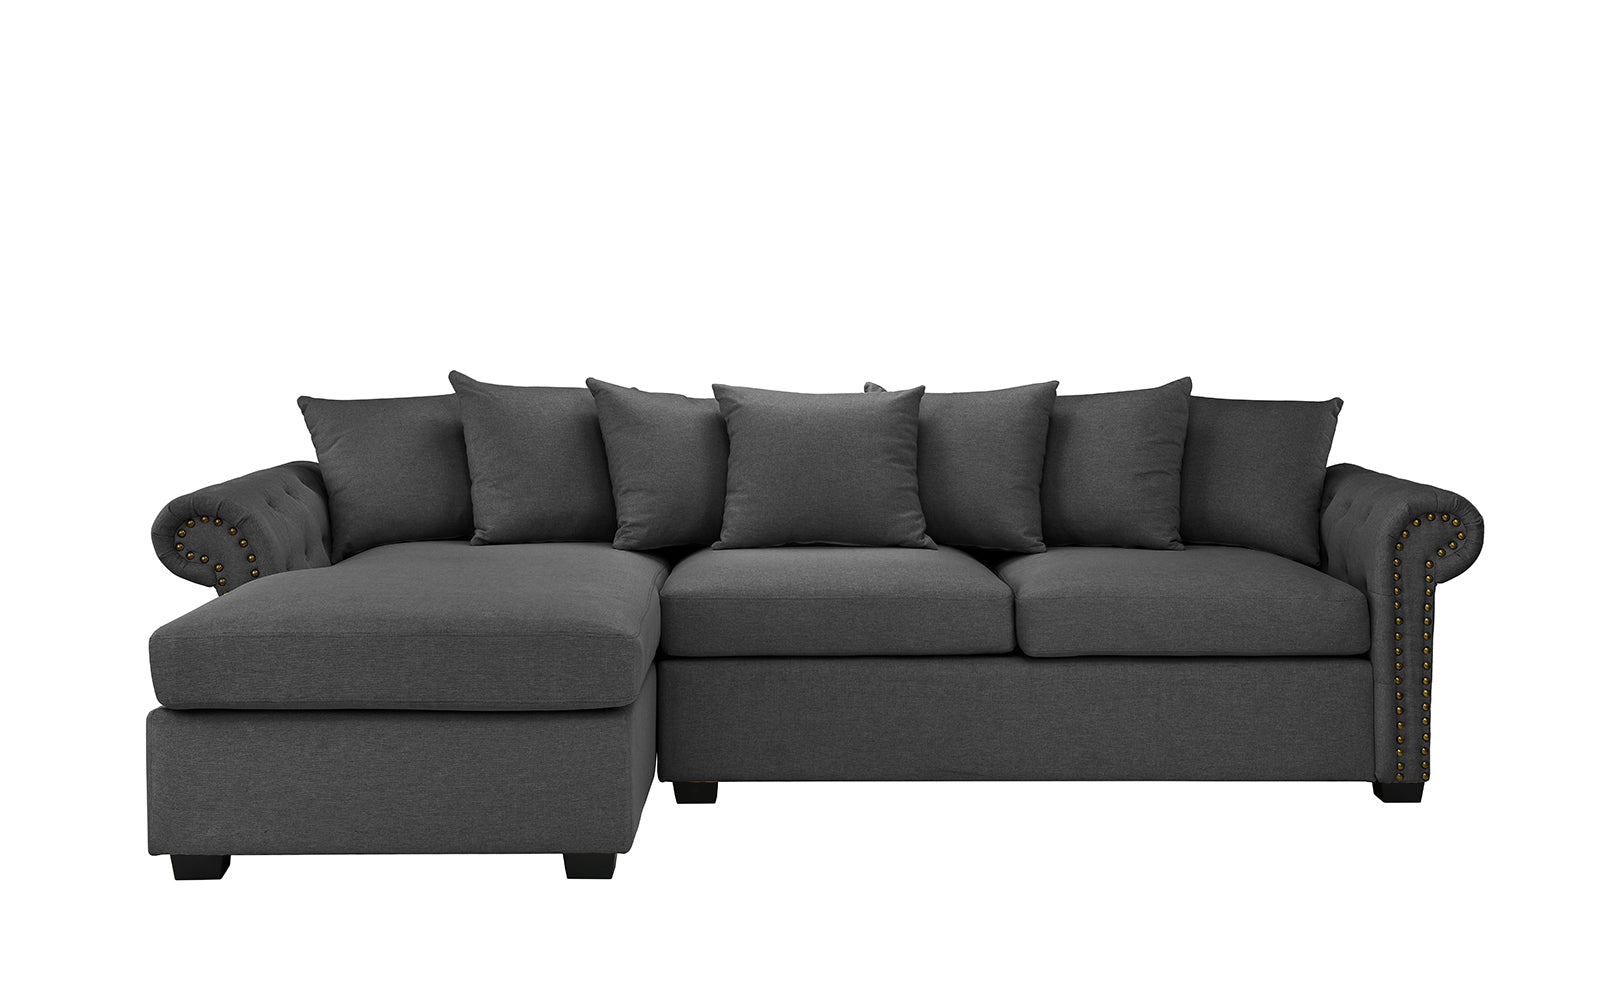 Linen Sectional Sofa Left Chaise Image